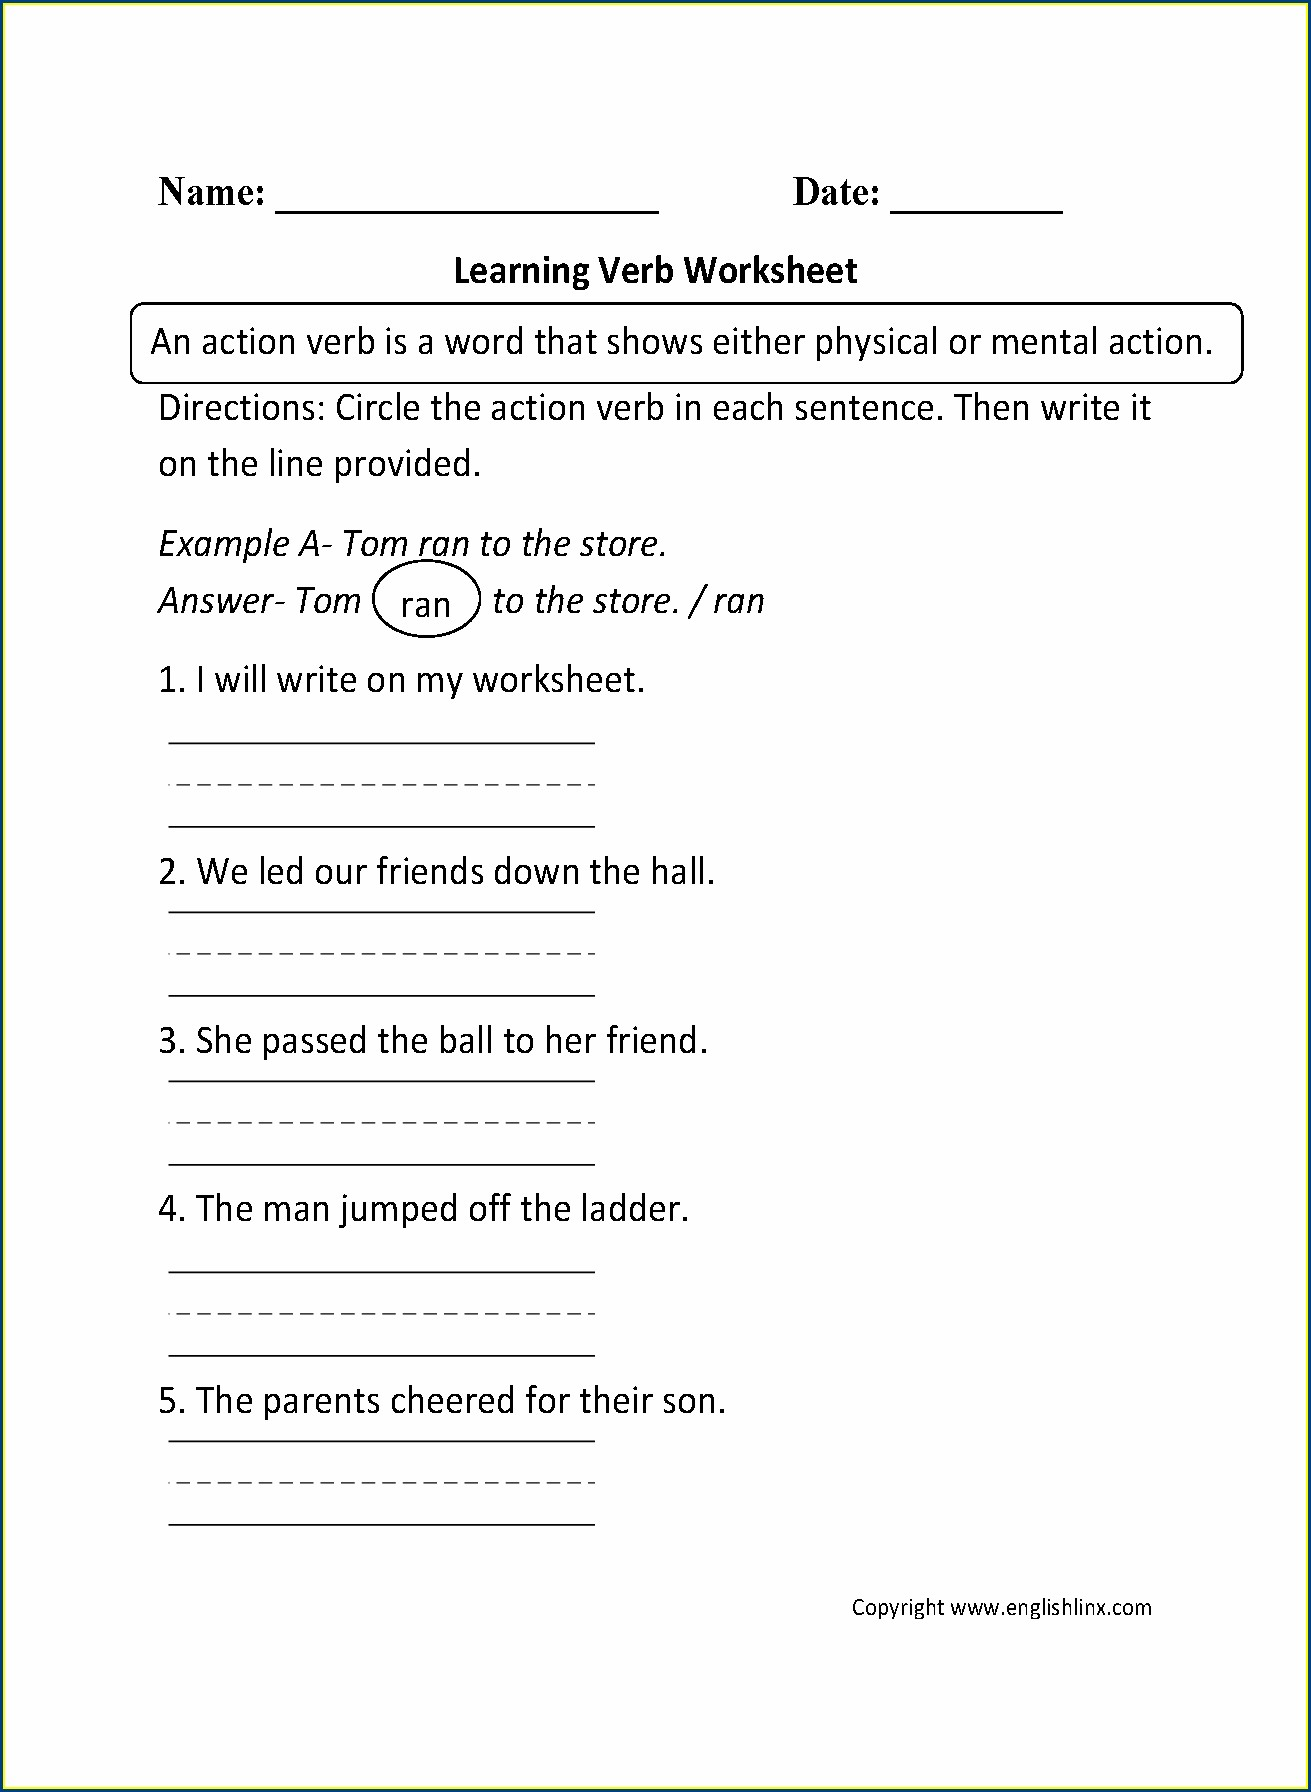 Correcting Subject Verb Agreement Errors Worksheet Answers